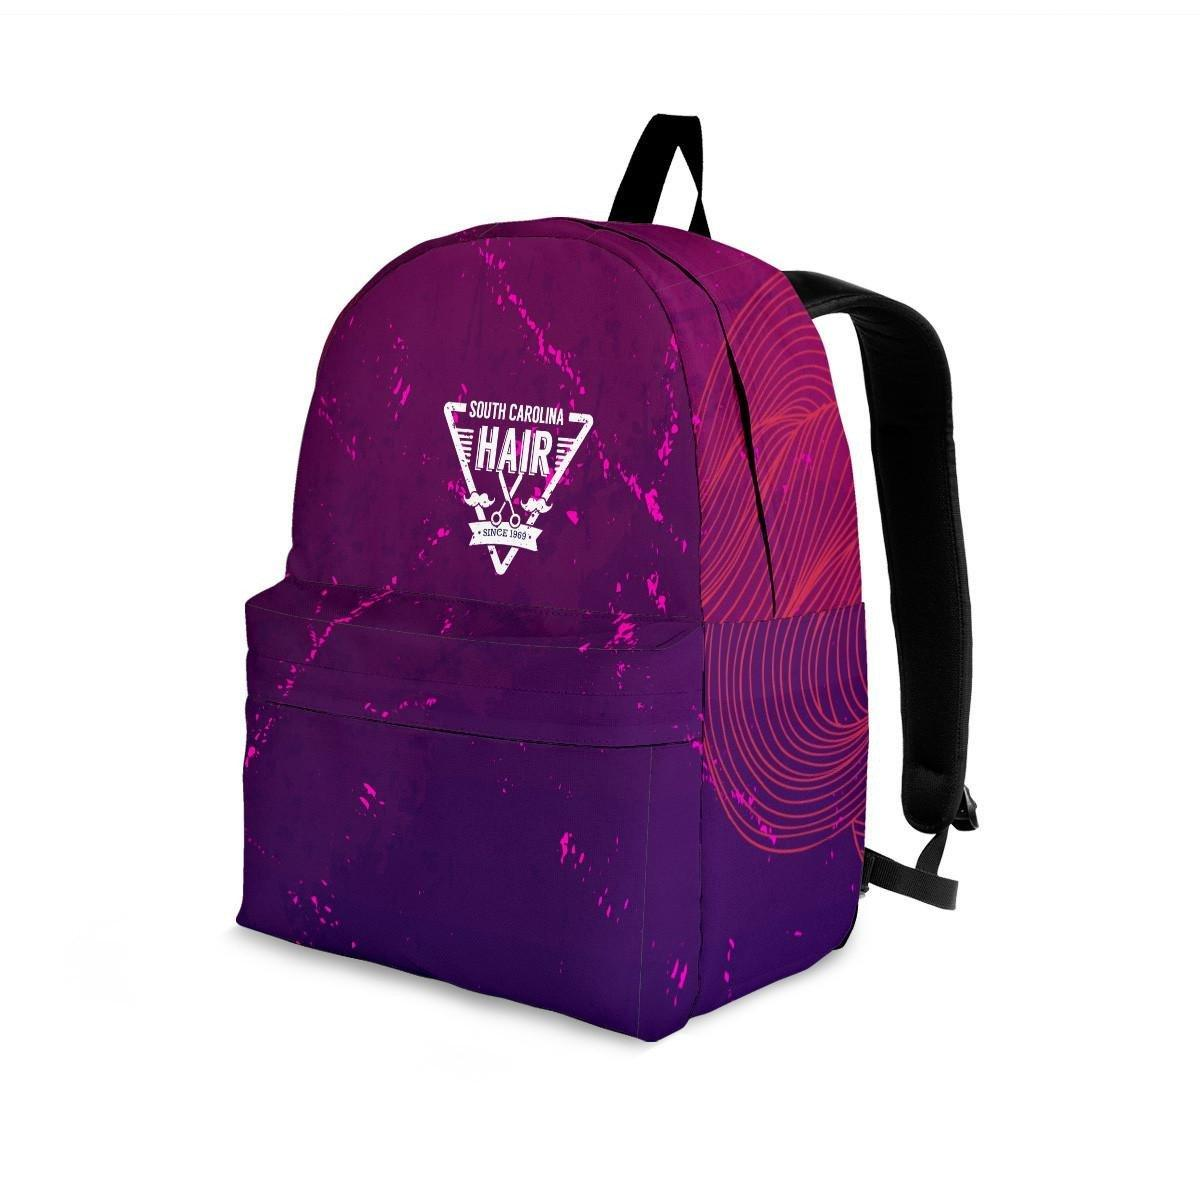 SC Hairdresser Backpack